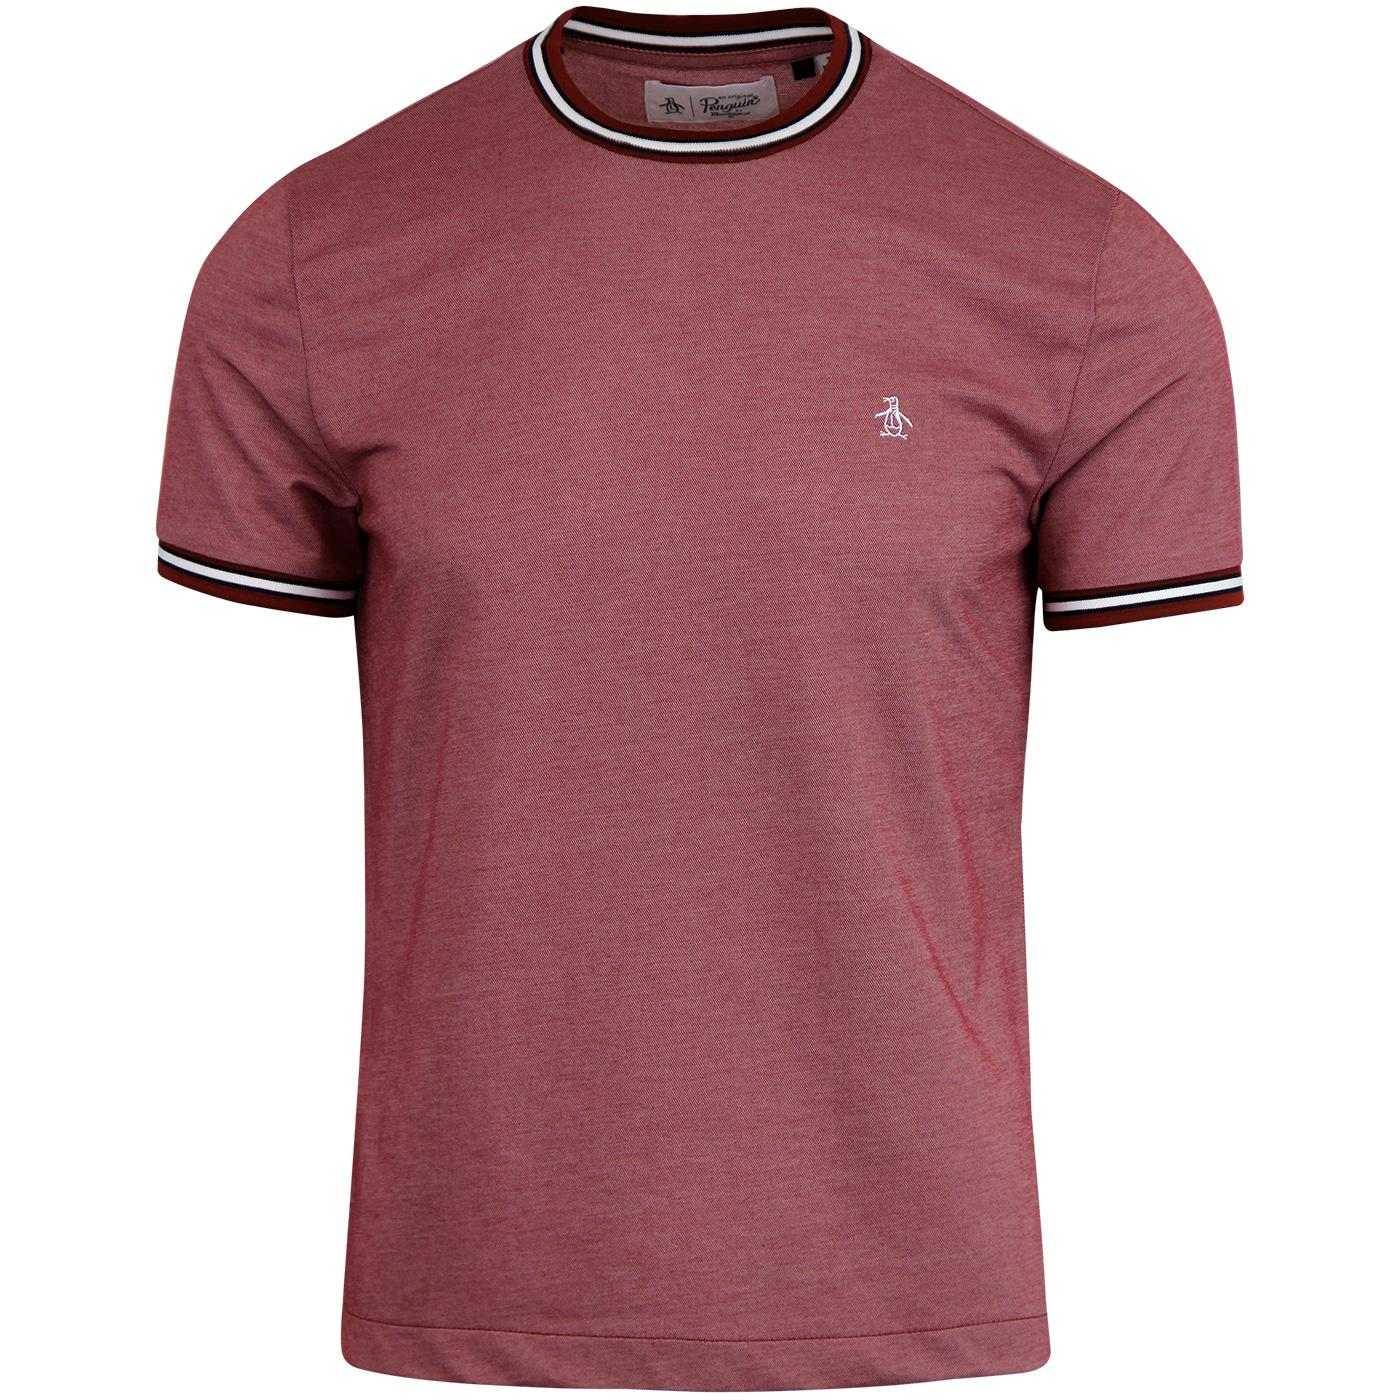 ORIGINAL PENGUIN Retro Mercerised Pique T-Shirt